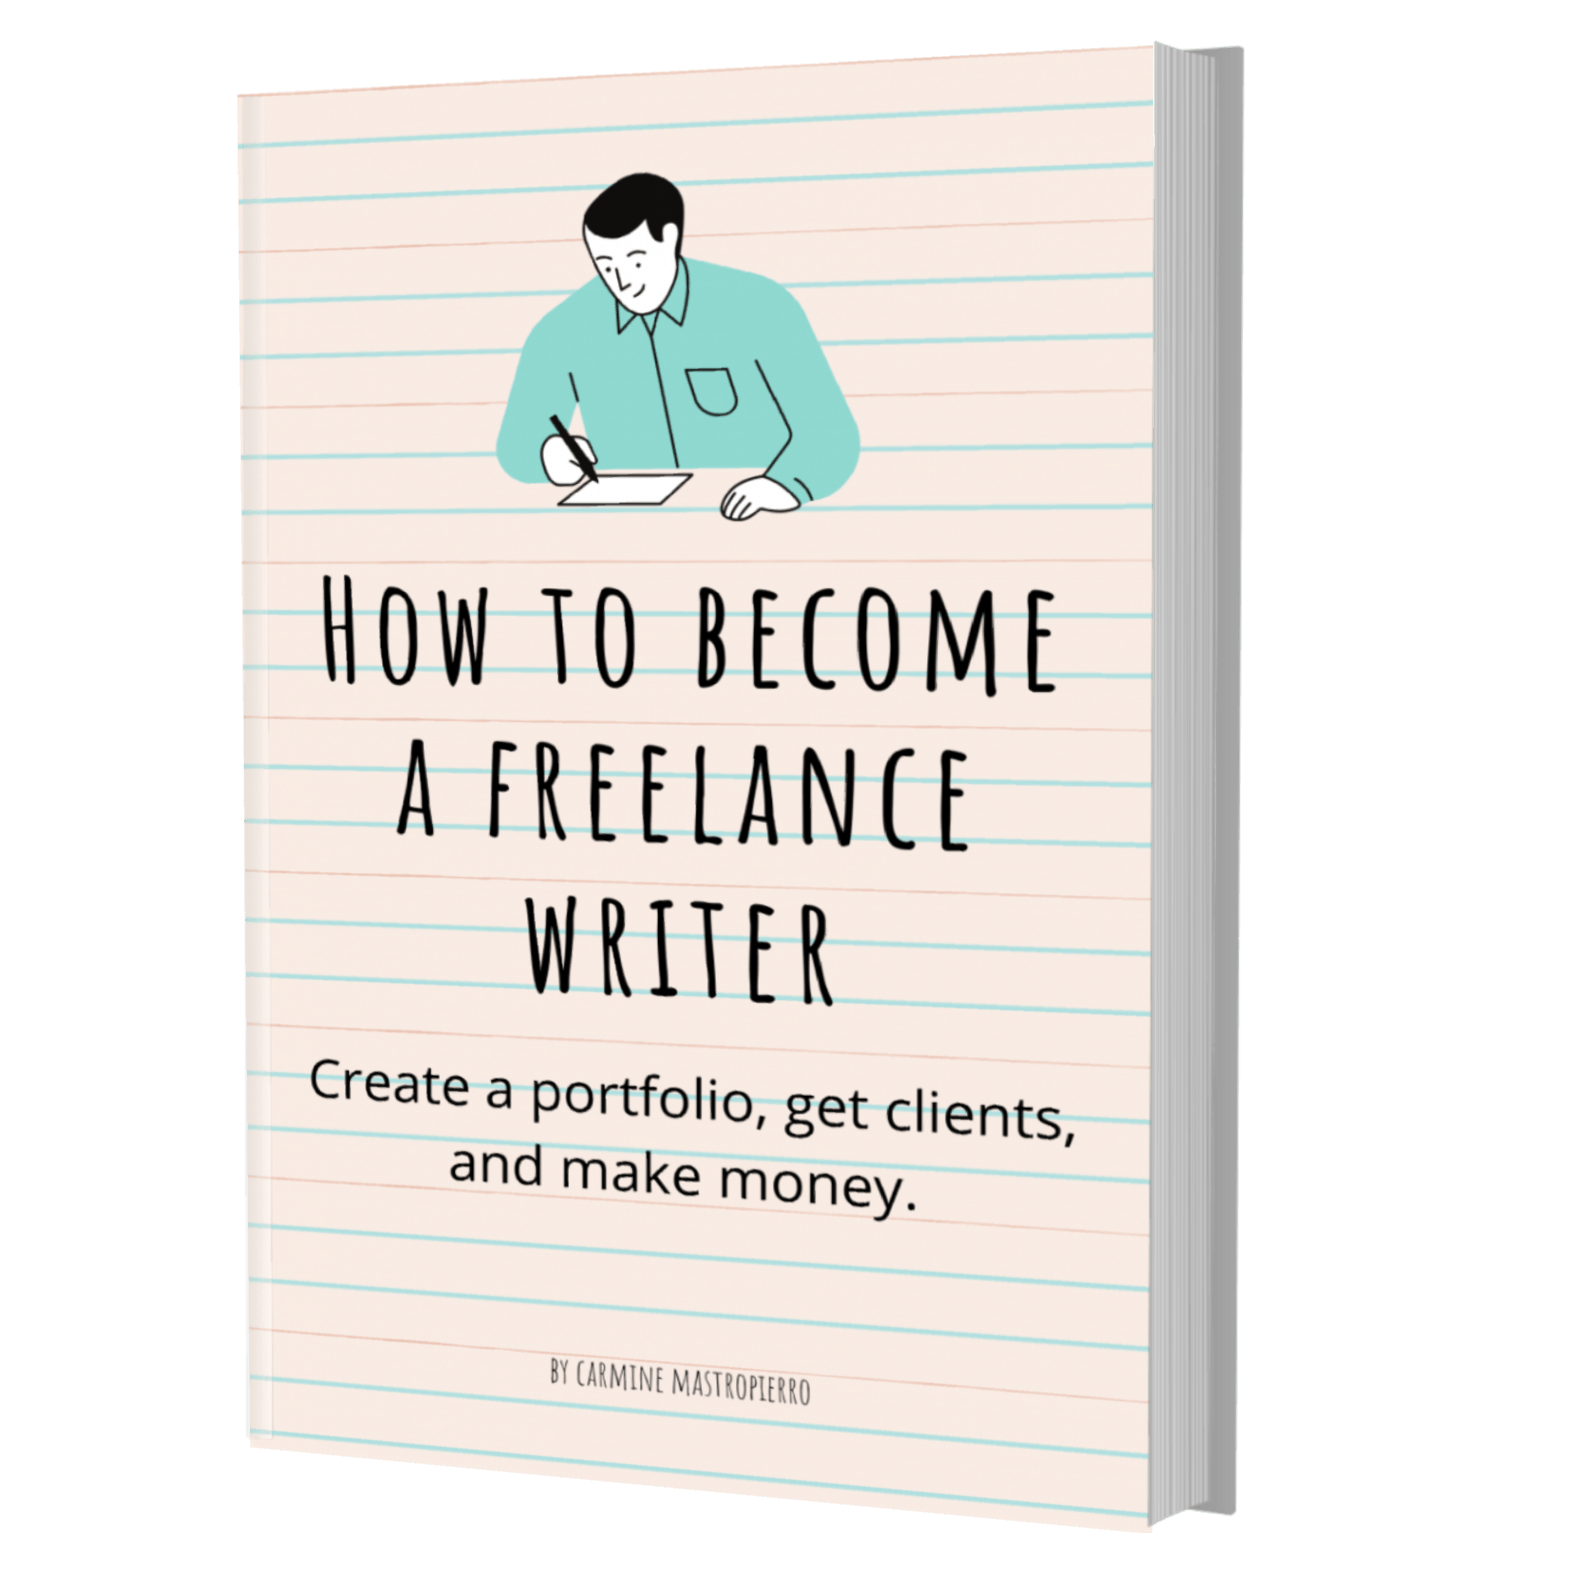 Freelance writing book